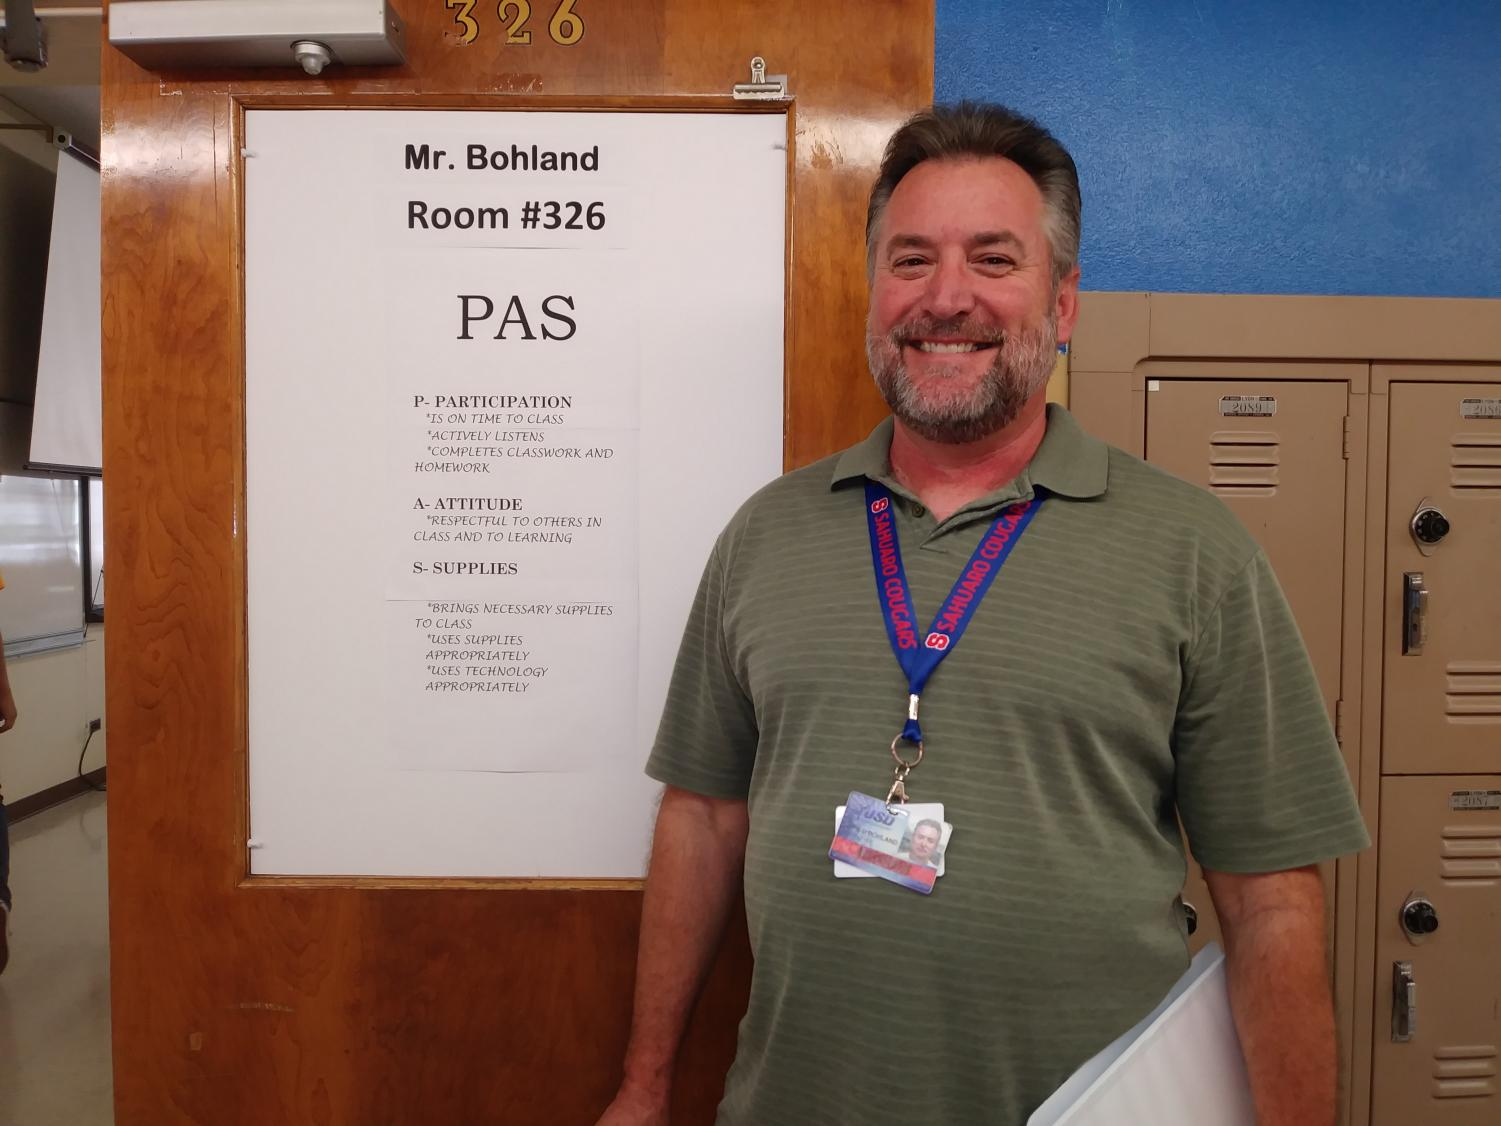 Image of Mr. Bohland by his room, #326